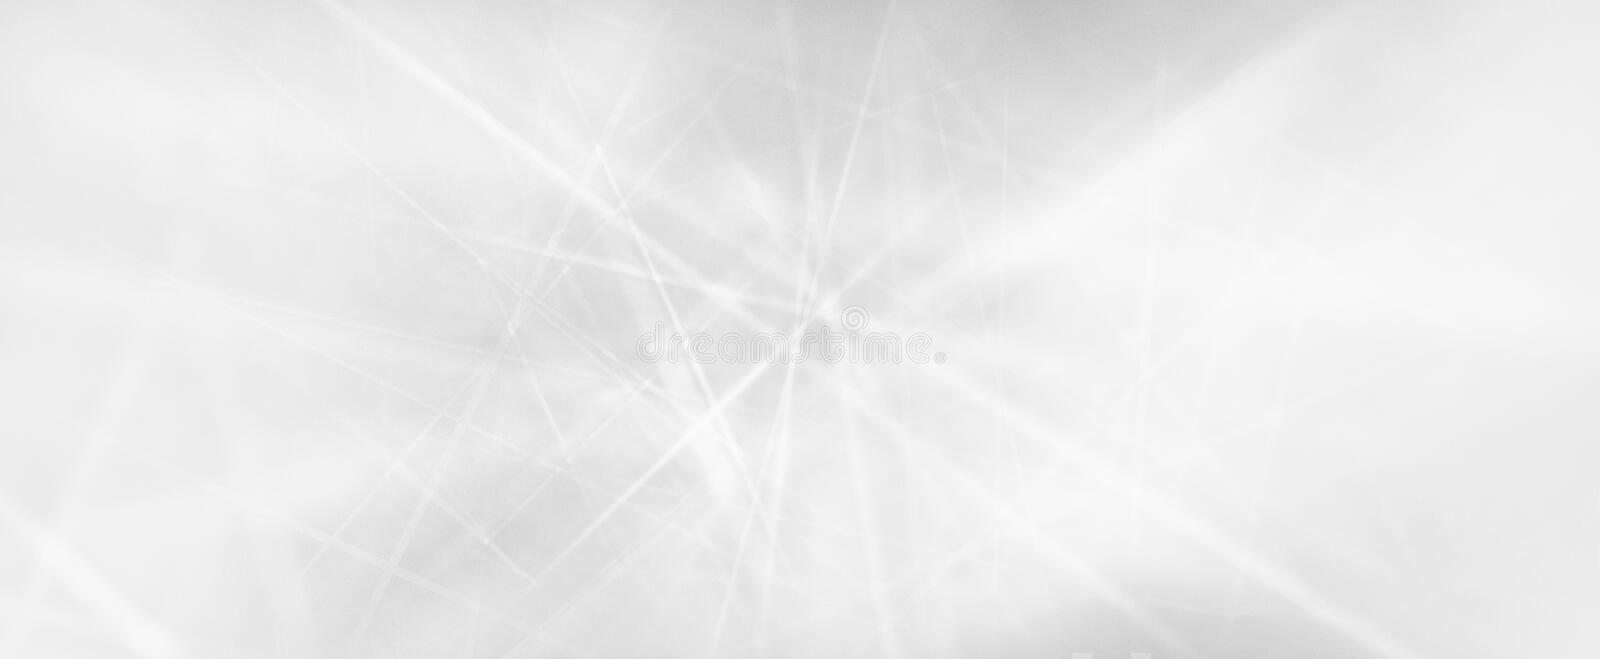 Abstract white background with laser beam stripes or digital communication lines in technology concept design.  Blurred beams of l stock photo